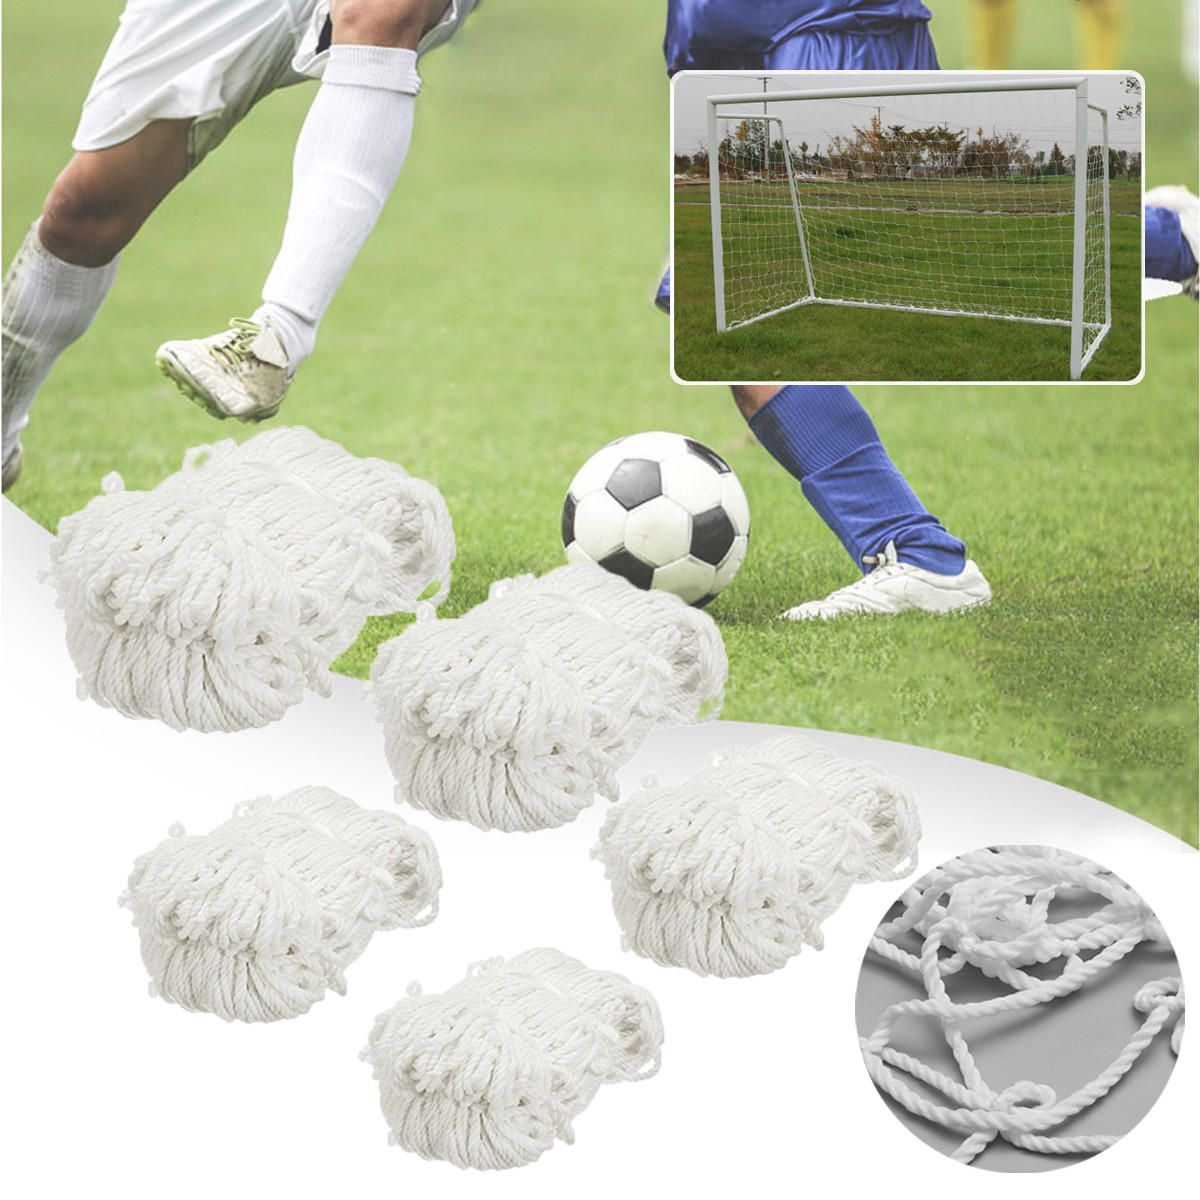 6b94f943 Football Soccer Goal Post Net Training Match Replace Outdoor Full Size  Adult Kid